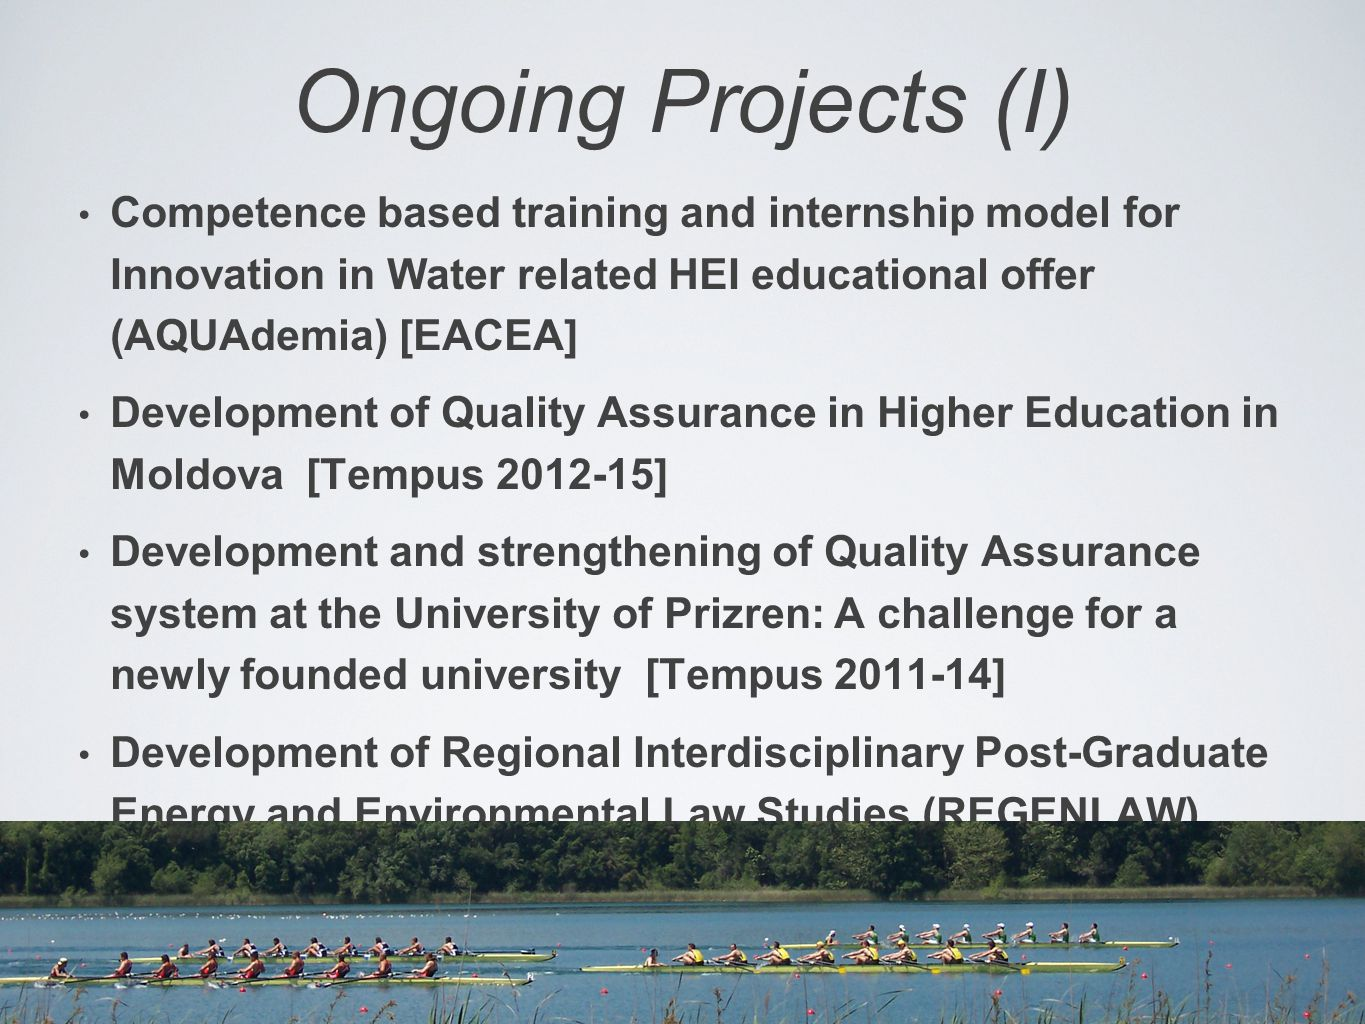 Ongoing Projects (I) Competence based training and internship model for Innovation in Water related HEI educational offer (AQUAdemia) [EACEA] Development of Quality Assurance in Higher Education in Moldova [Tempus 2012-15] Development and strengthening of Quality Assurance system at the University of Prizren: A challenge for a newly founded university [Tempus 2011-14] Development of Regional Interdisciplinary Post-Graduate Energy and Environmental Law Studies (REGENLAW) [Tempus 2011-14]